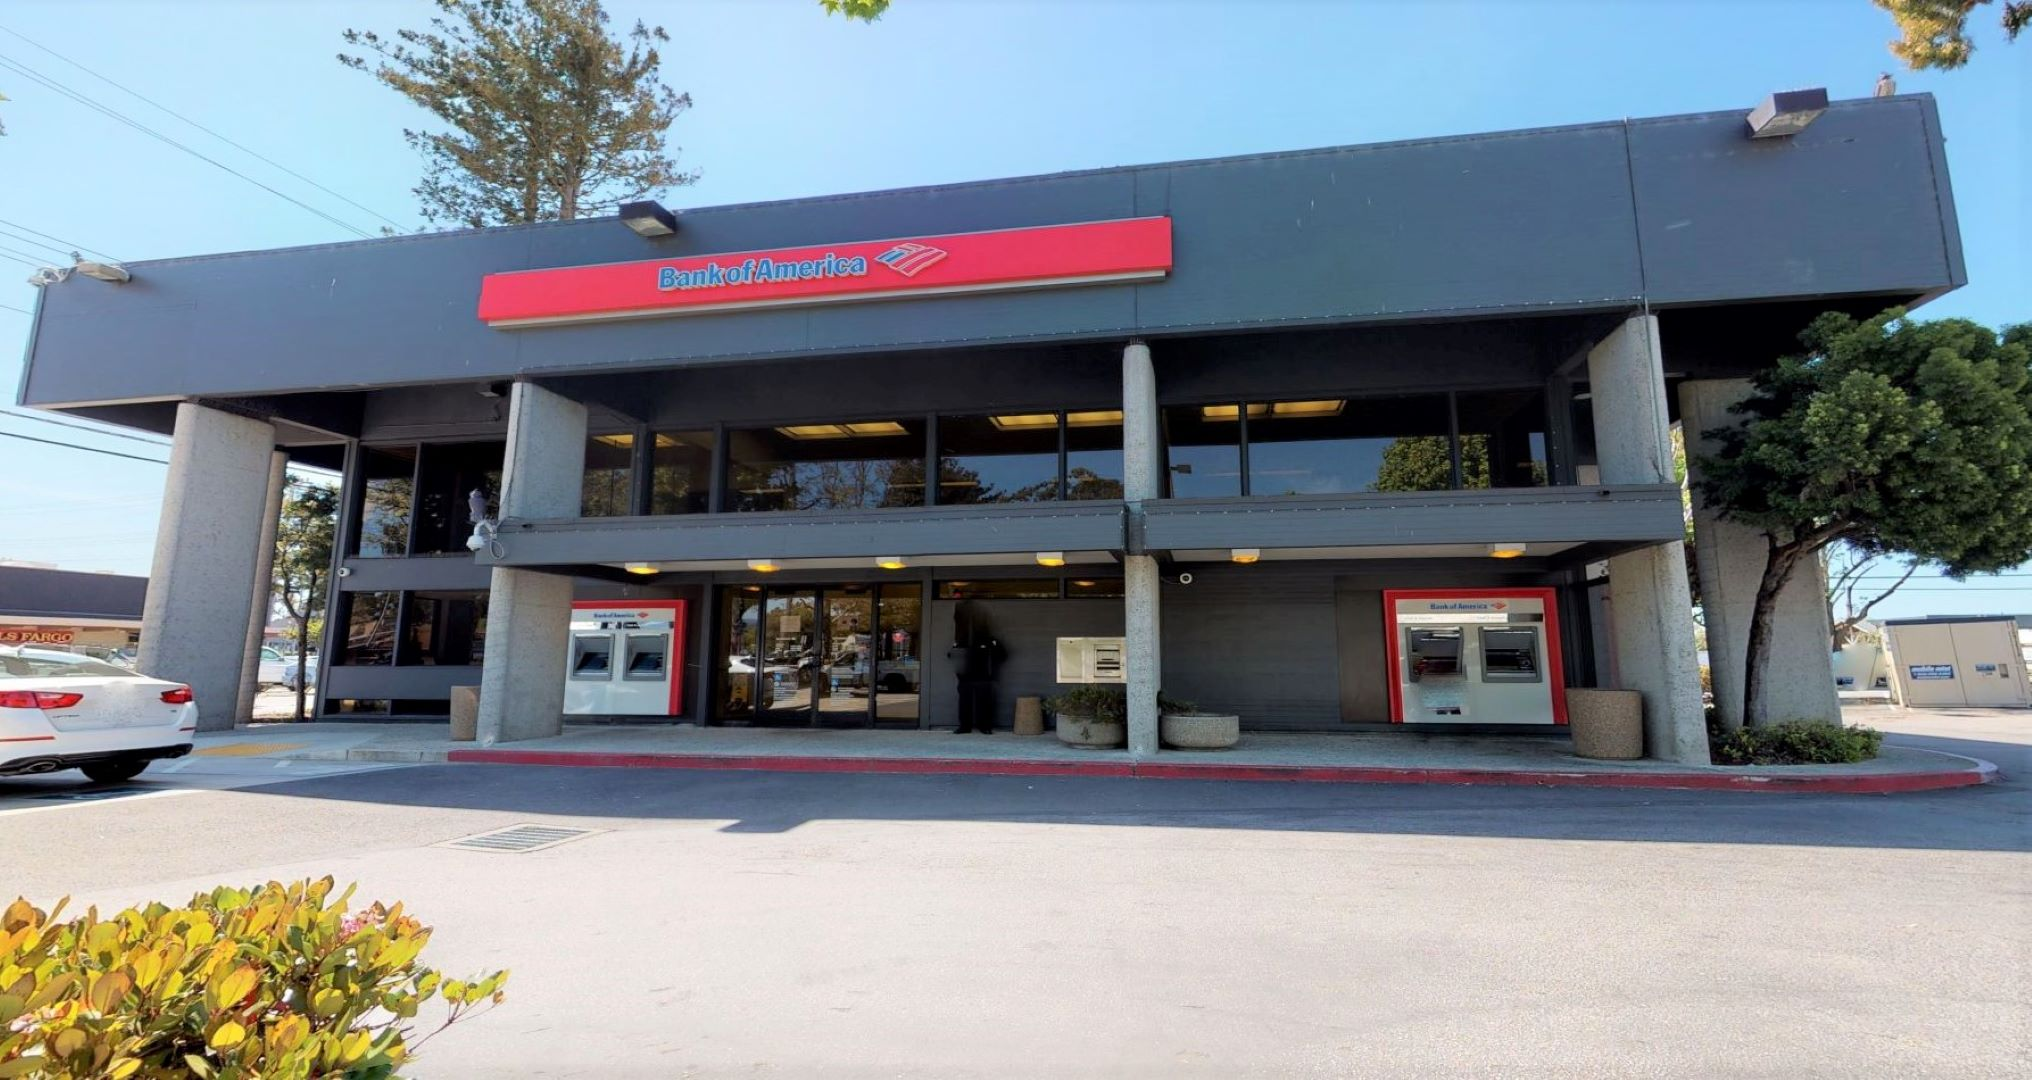 Bank of America financial center with walk-up ATM   4055 Capitola Rd, Capitola, CA 95010